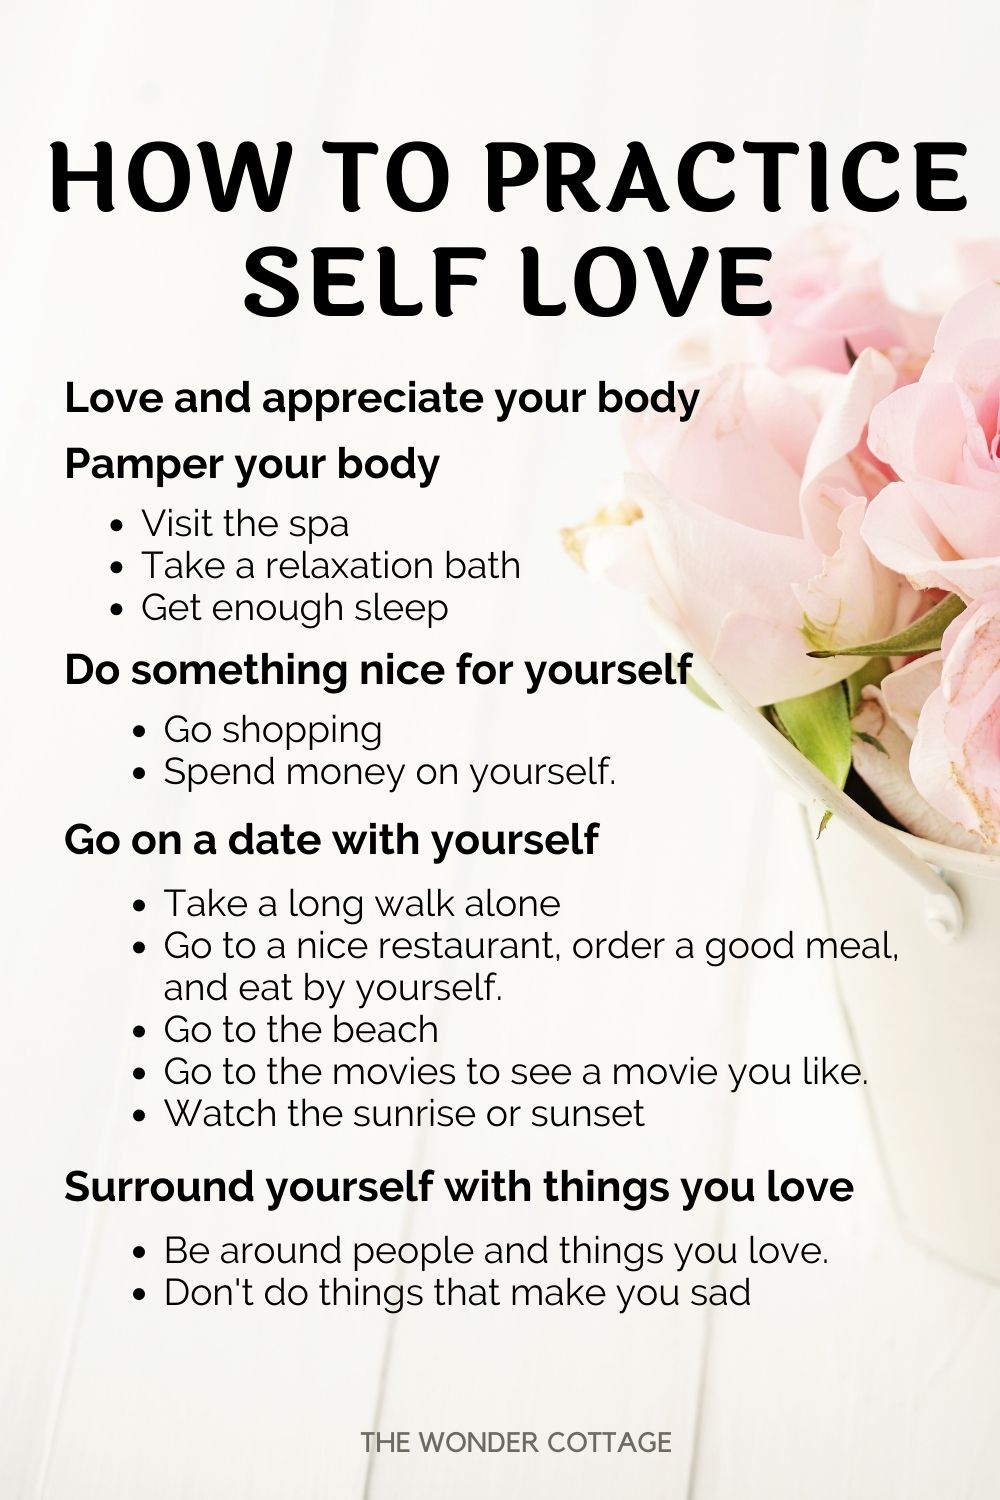 how to practice self love